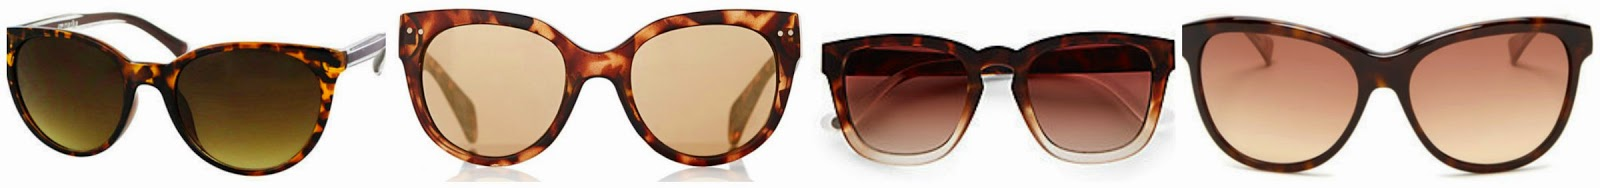 Marika Virginia Cat Eye Sunglasses $14.99 (regular $26.00)  The Limited Tortoise Shell Mirror Sunglasses $17.97 (regular $29.95)  Ivanka Trump Ombre Tortoise Sunglasses $35.99 (regular $98.00)  Diane von Furstenberg Cat Eye Sunglasses $49.97 (regular $150.00)